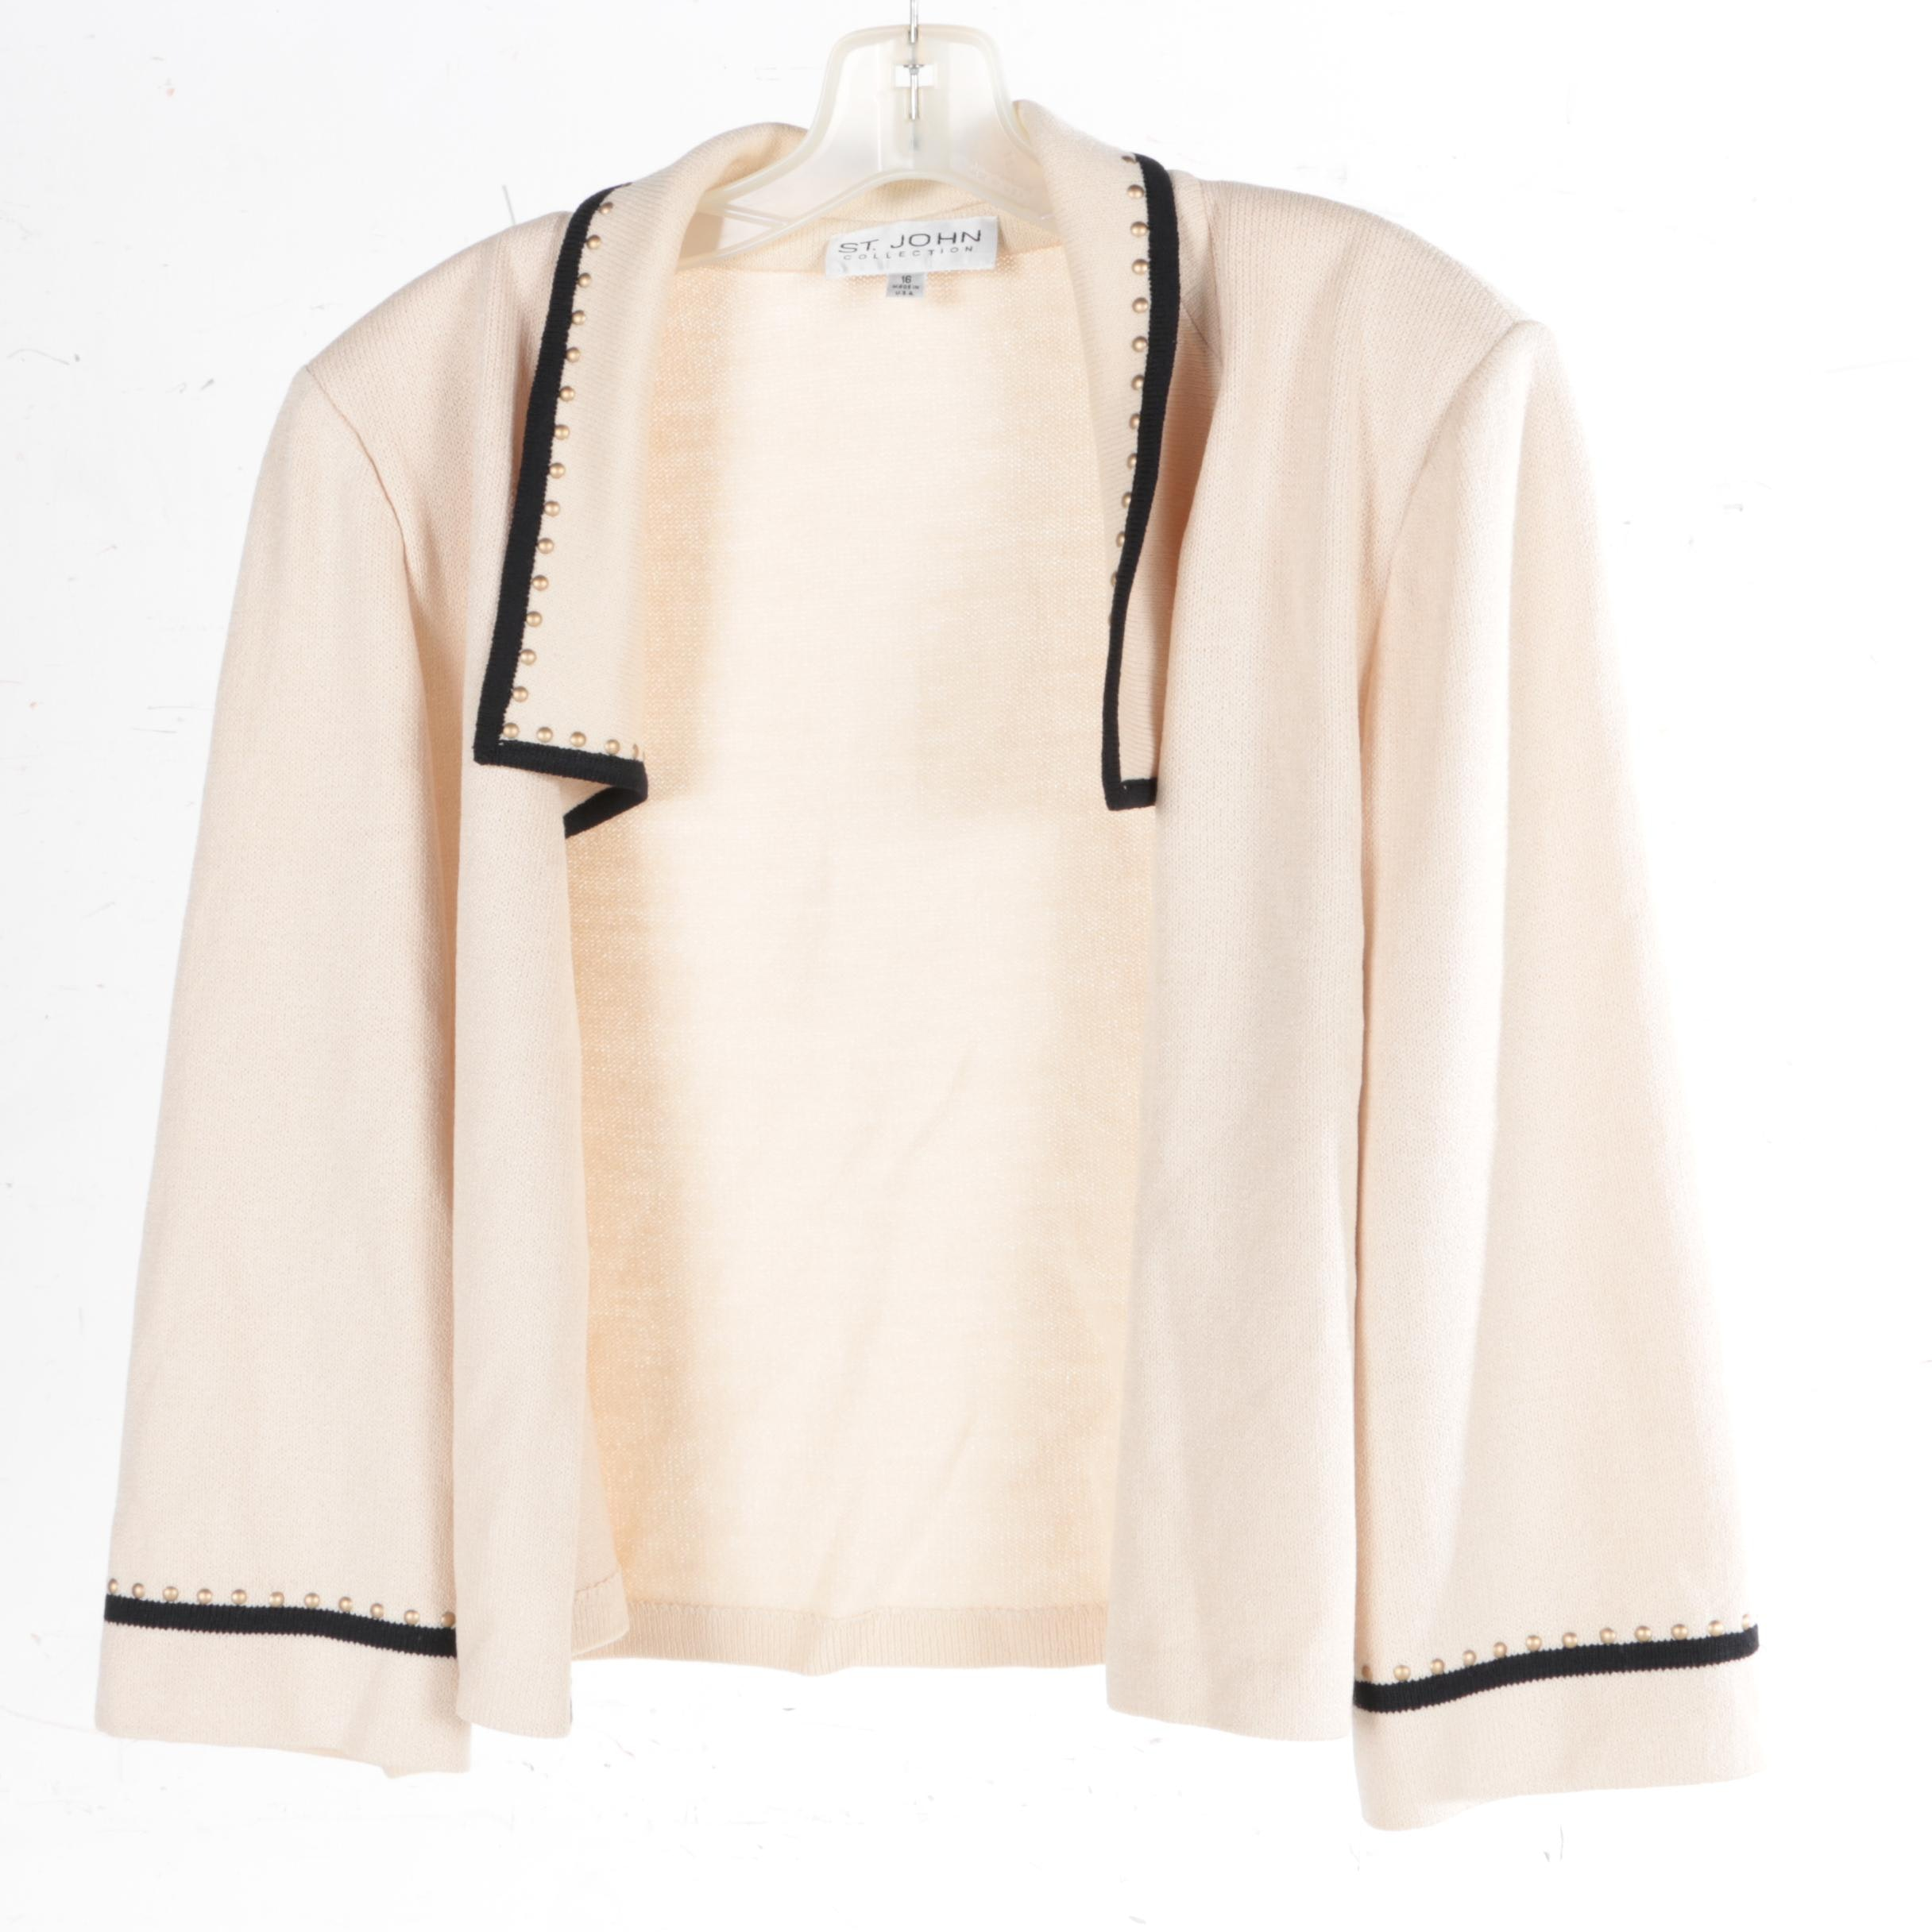 St. John Collection Ivory Studded Knit Open Cardigan